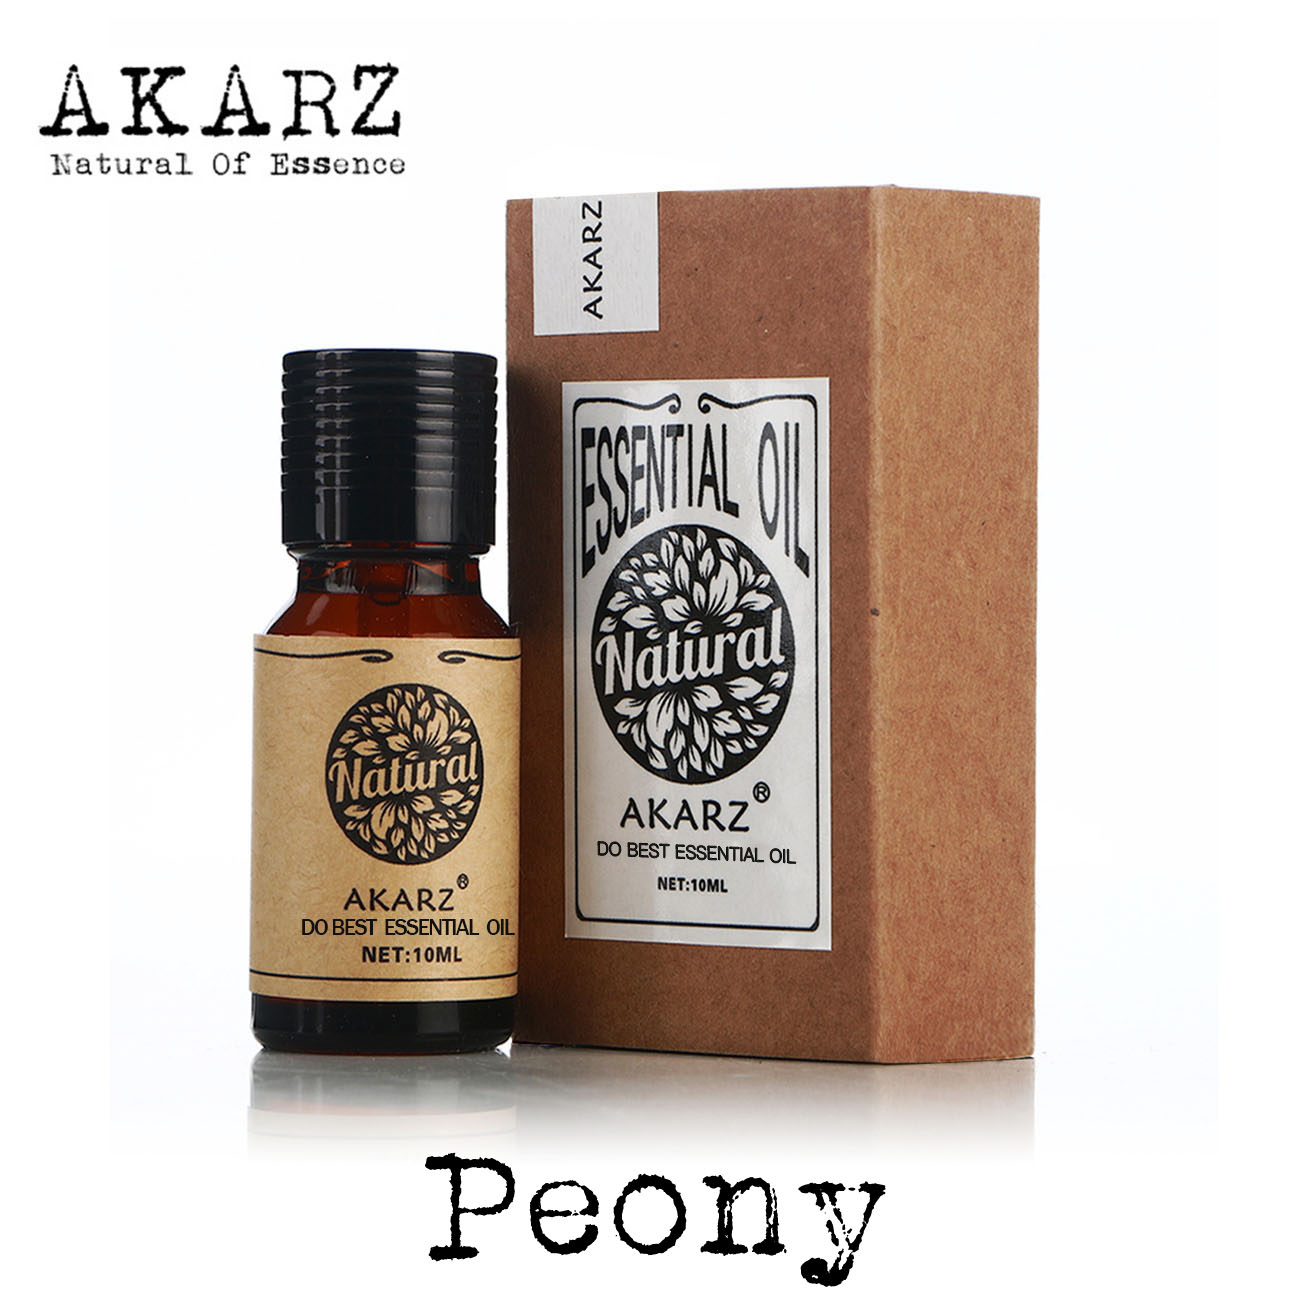 Peony essential oil AKARZ Top Brand body face skin care spa message fragrance lamp Aromatherapy Peony oil image